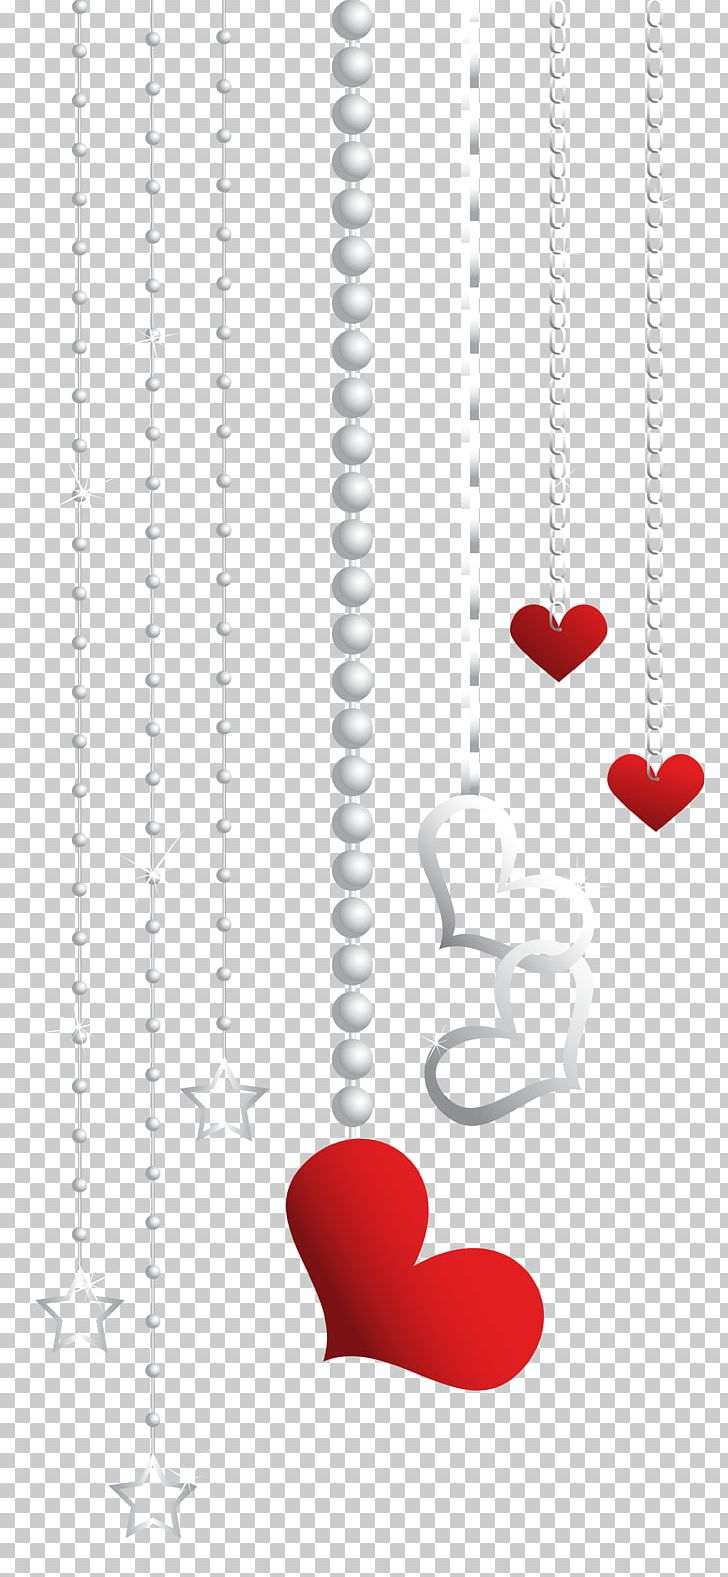 Valentine's Day Heart Love PNG, Clipart, Art, Clip Art, Cupid, Gift, Heart Free PNG Download